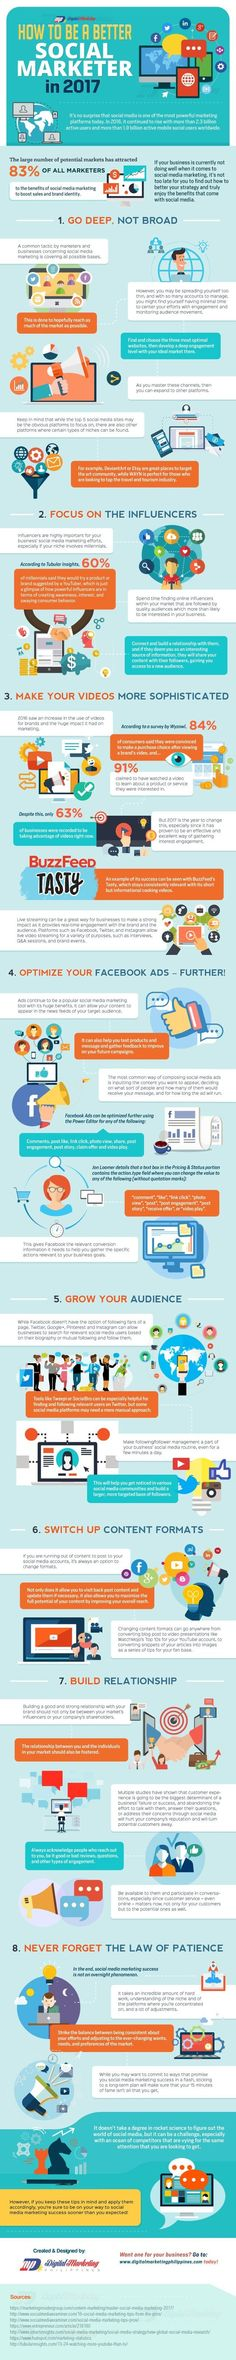 Are you looking for ways to improve your #socialmedia #marketing efforts? Need help identifying areas in which your competitors are taking advantage? Alberta Digital has some great tips in this #infographic. #AlbertaWebsites #WebsiteDesign